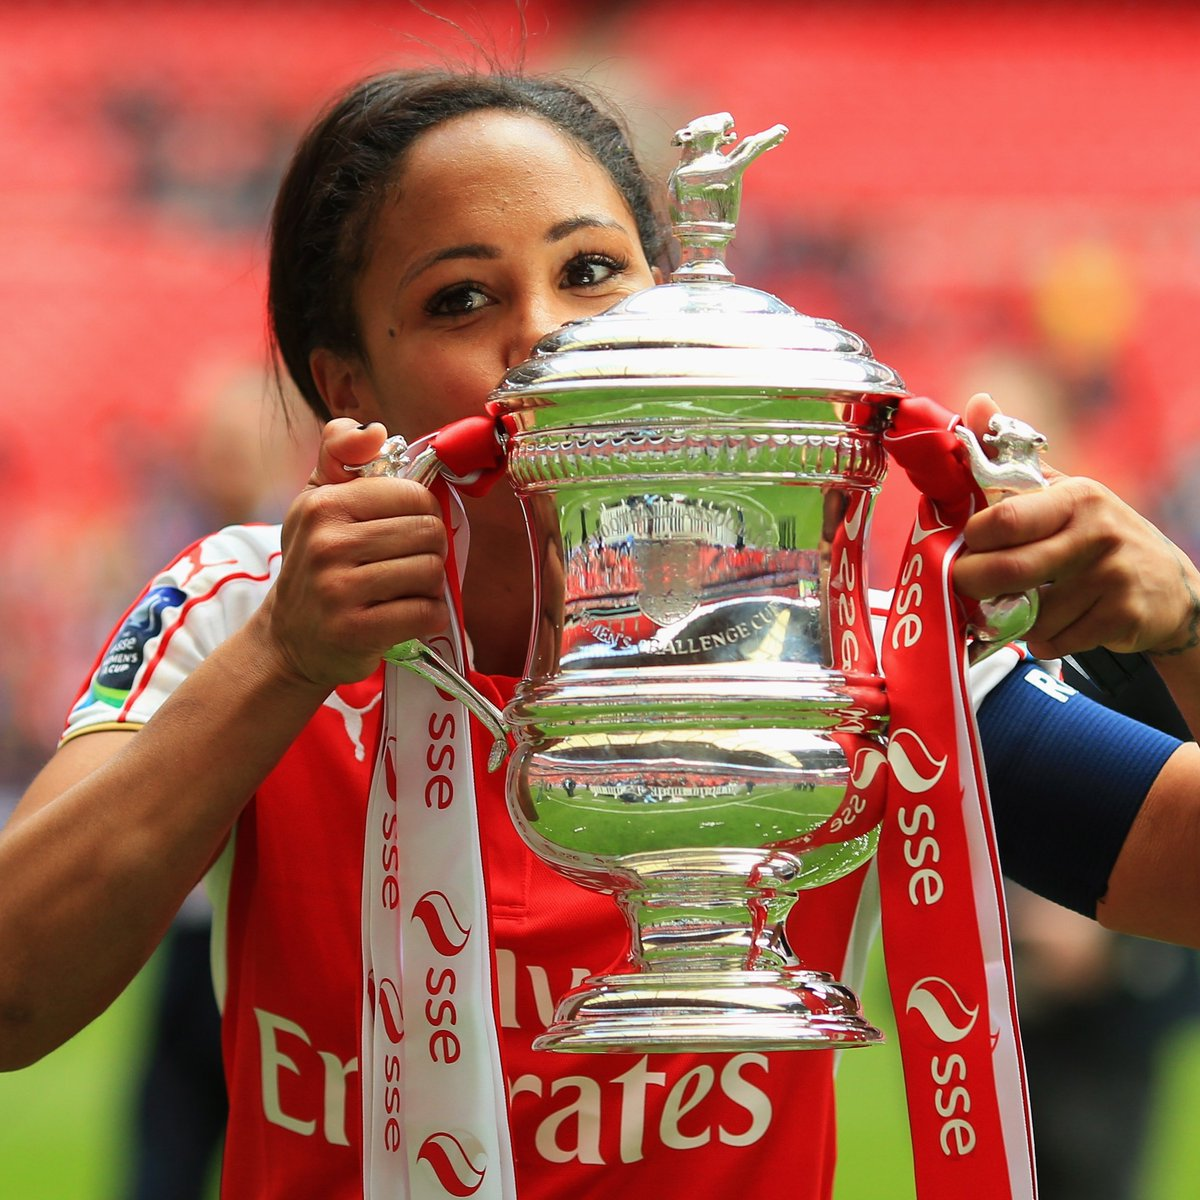 Wishing you the best of luck in @BBCStrictly, @AlexScott 💃 But you won't need it… you're used to winning trophies 😉